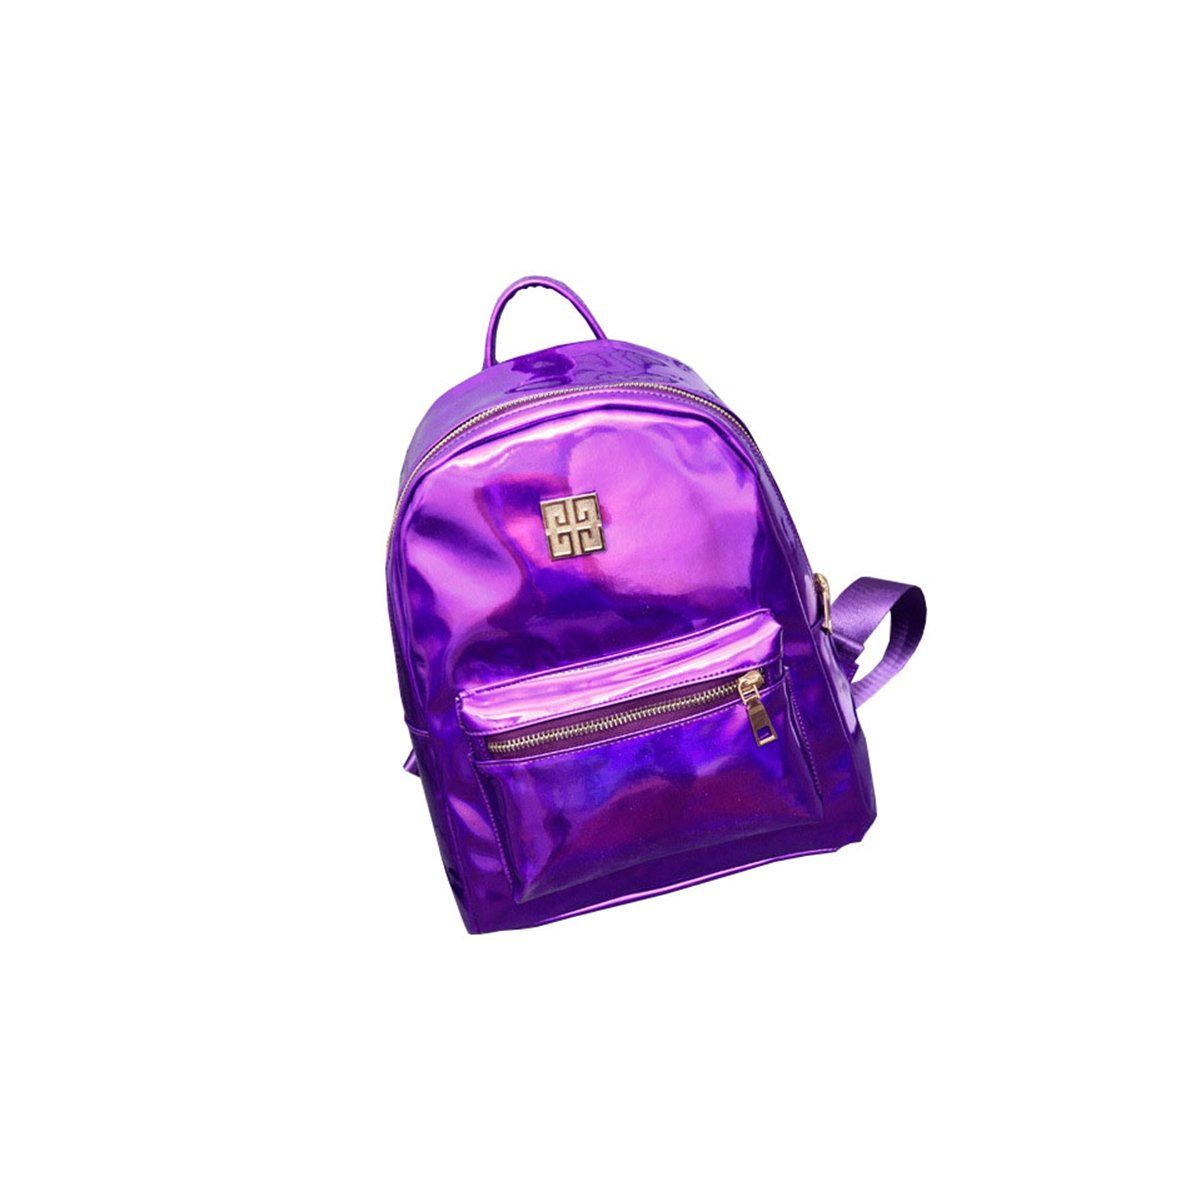 ThinkMax Women Fashion NewGirl Hologram Holographic Laser PVC School Backpack Bag Purple UK-I13835-LOVE